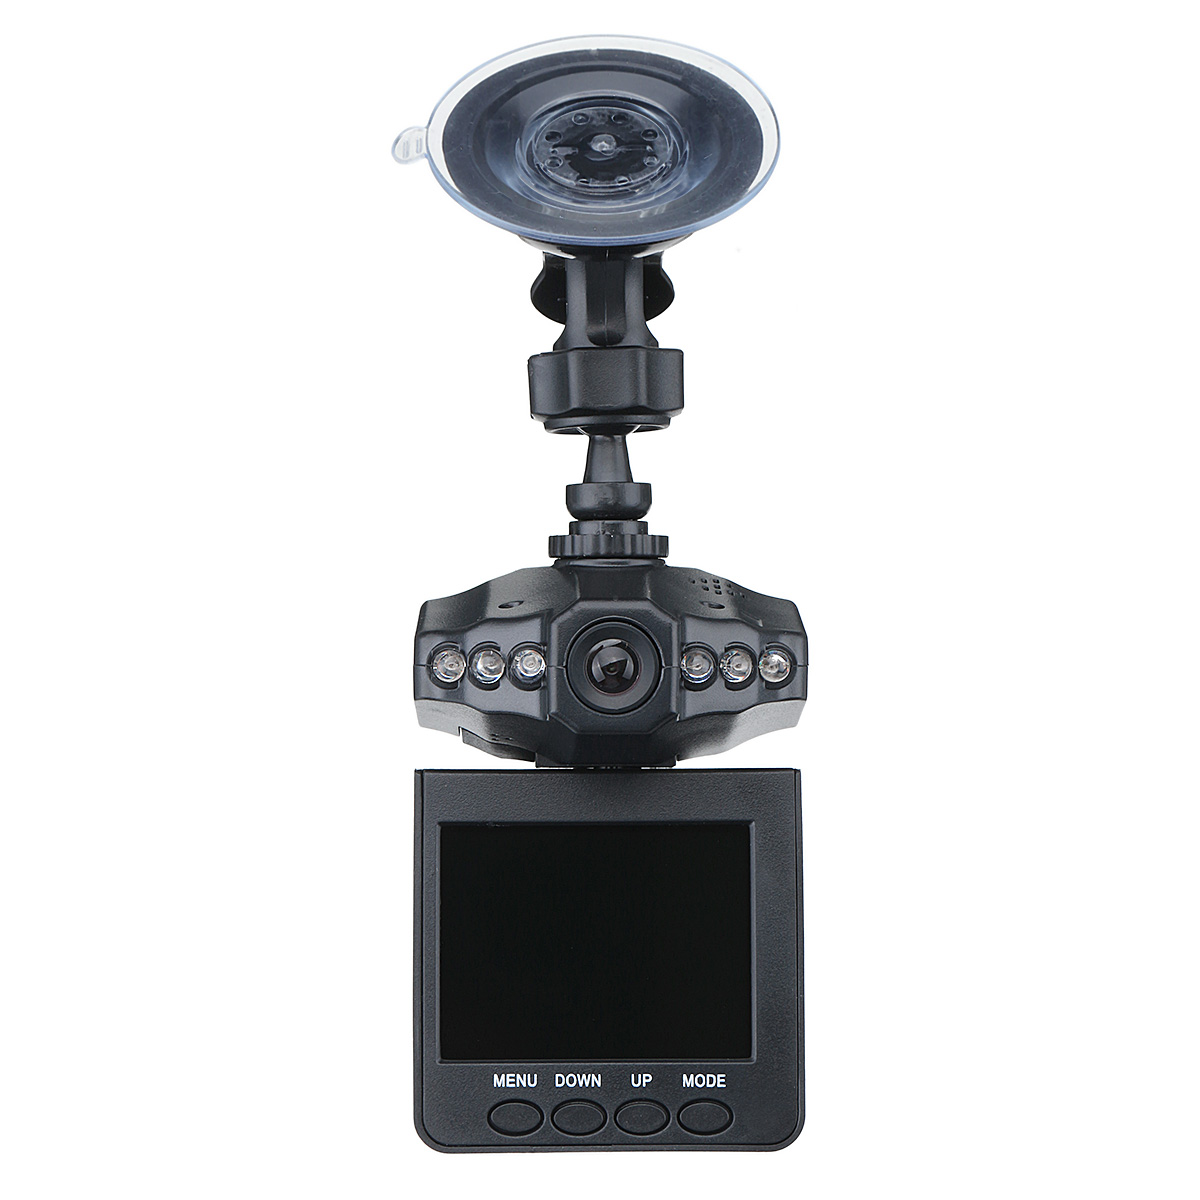 DVR Dashboard Recording Car-Camera View 6-Lights Full-Hd 1080p Loop with Wide-Angle